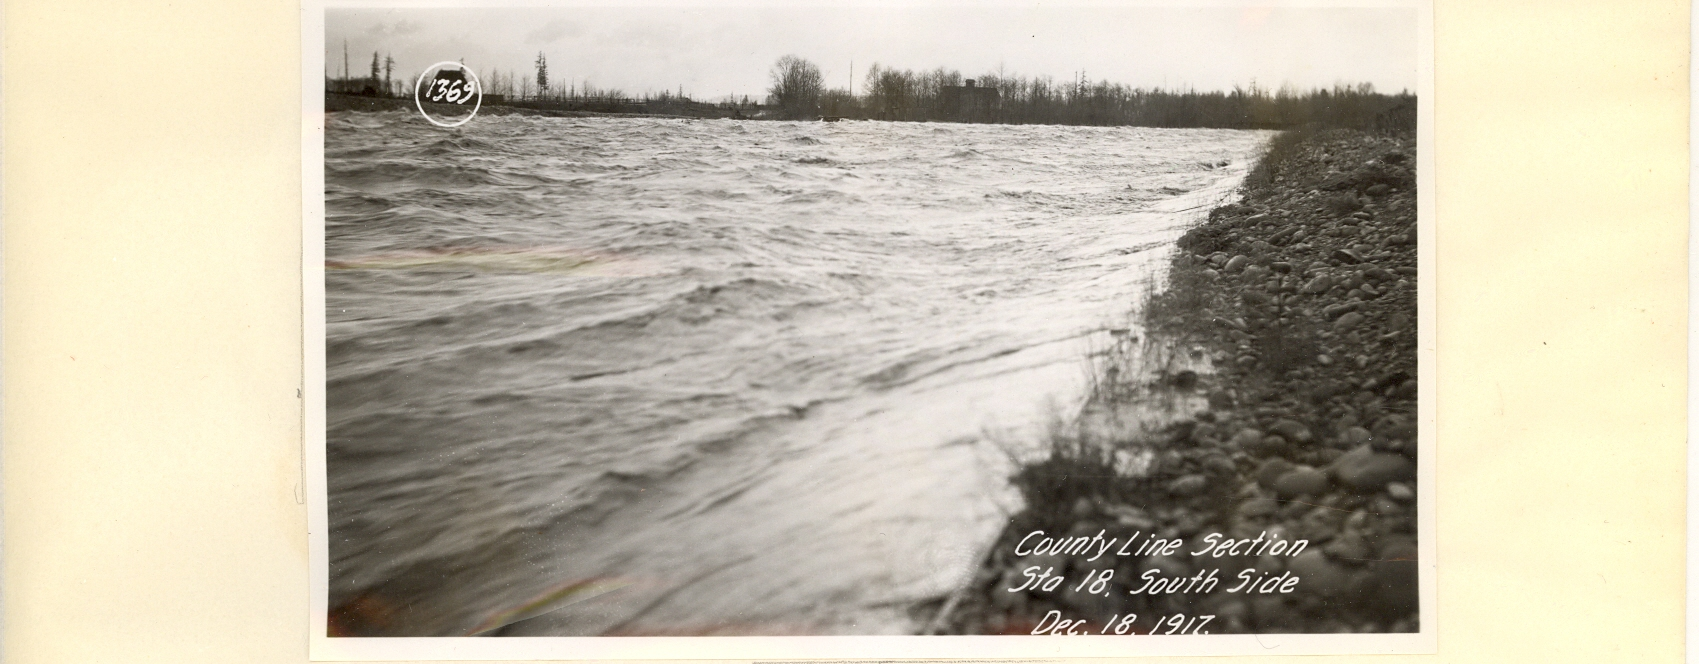 Same section during flood which caused destruction of lower 3600 feet